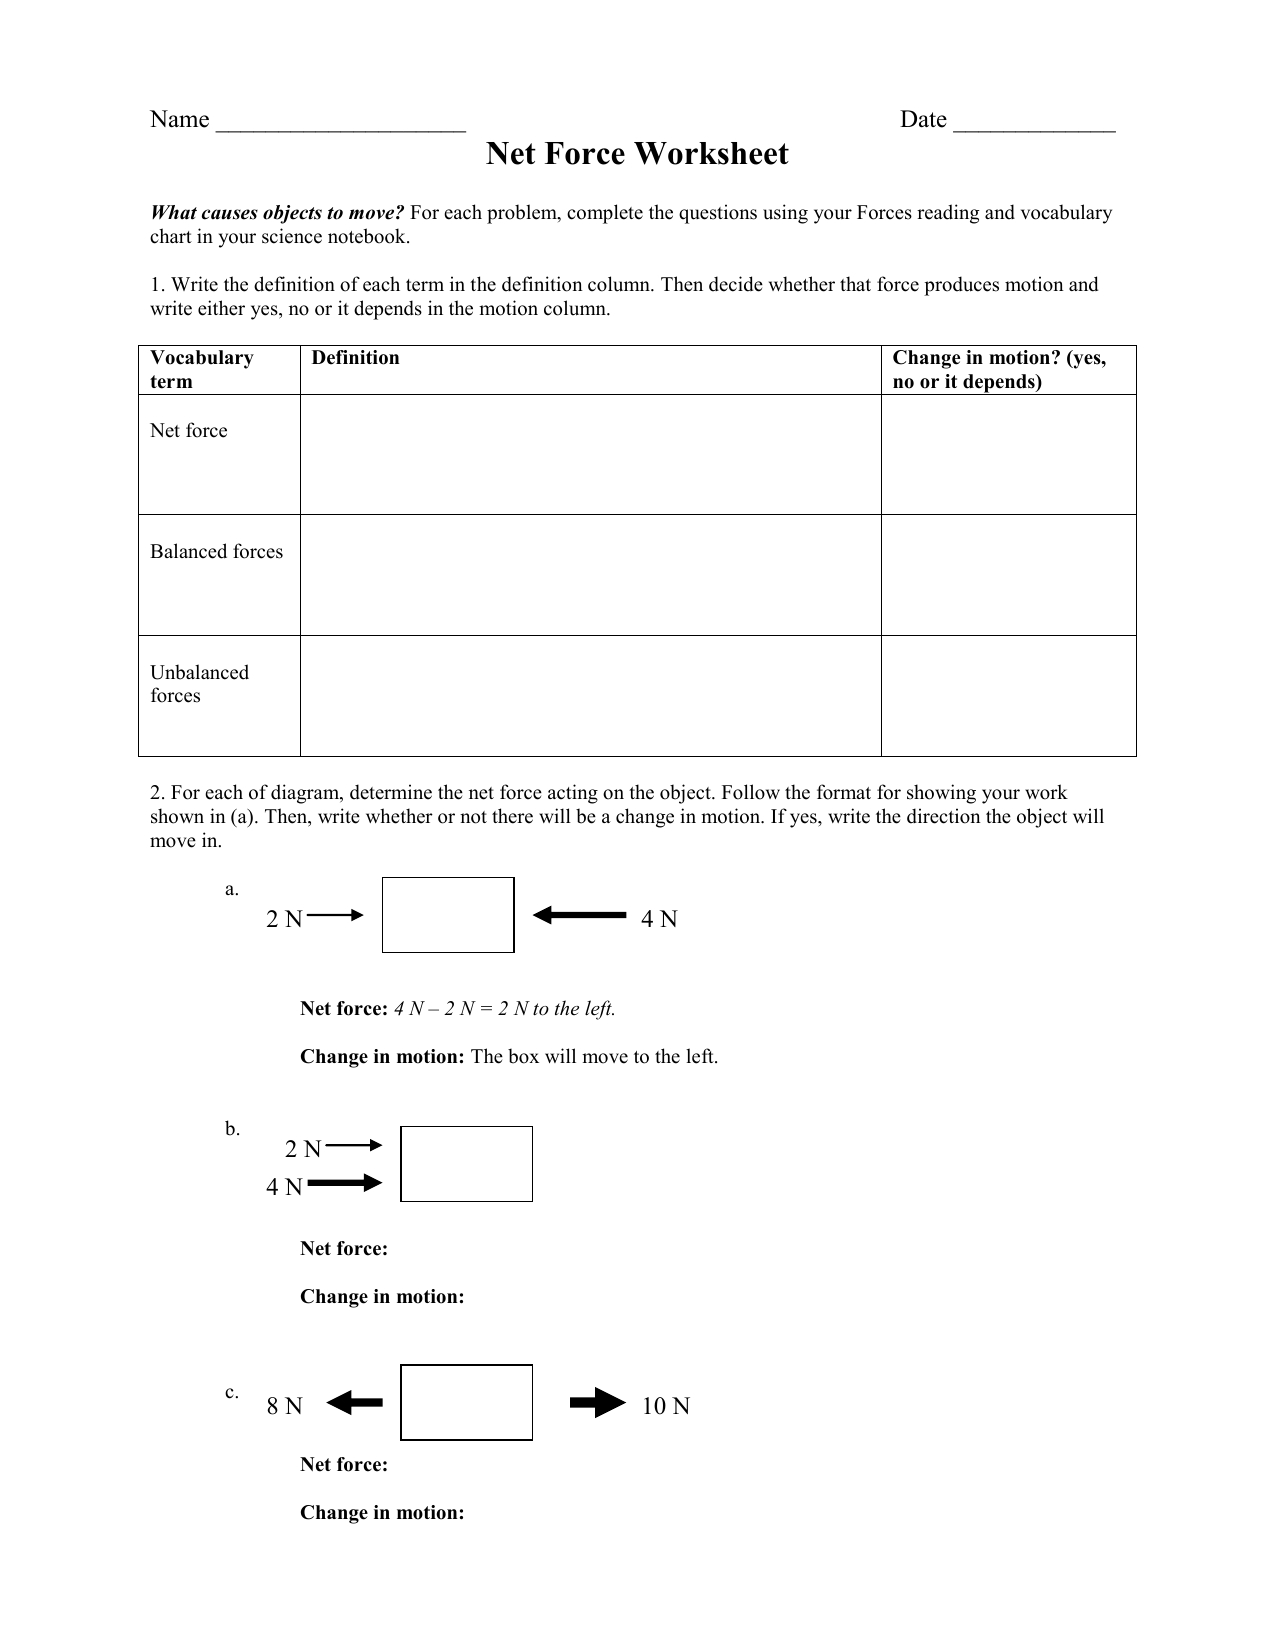 Net Force Worksheet Crjh 8th Grade Science